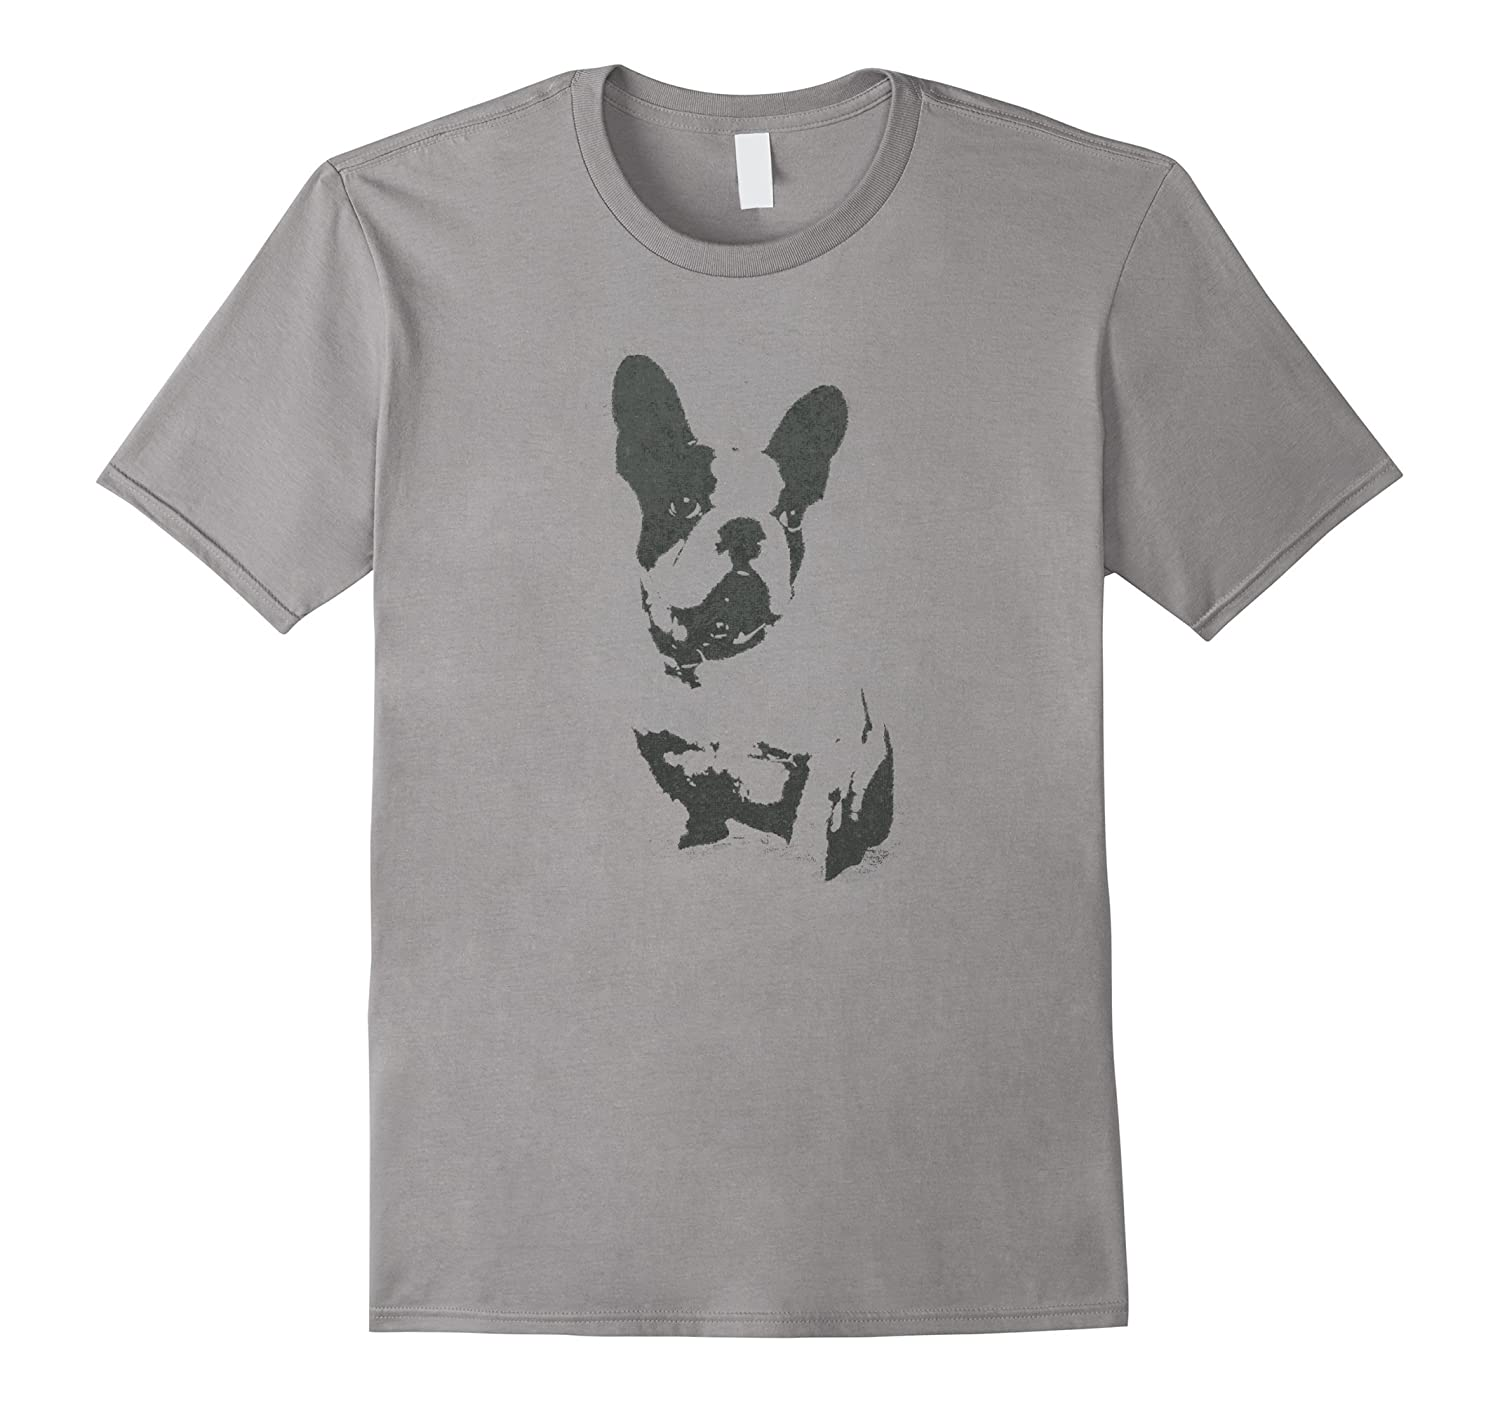 Vintage Boston Terrier Dog Shirt Made By Dogs Made Better-Vaci